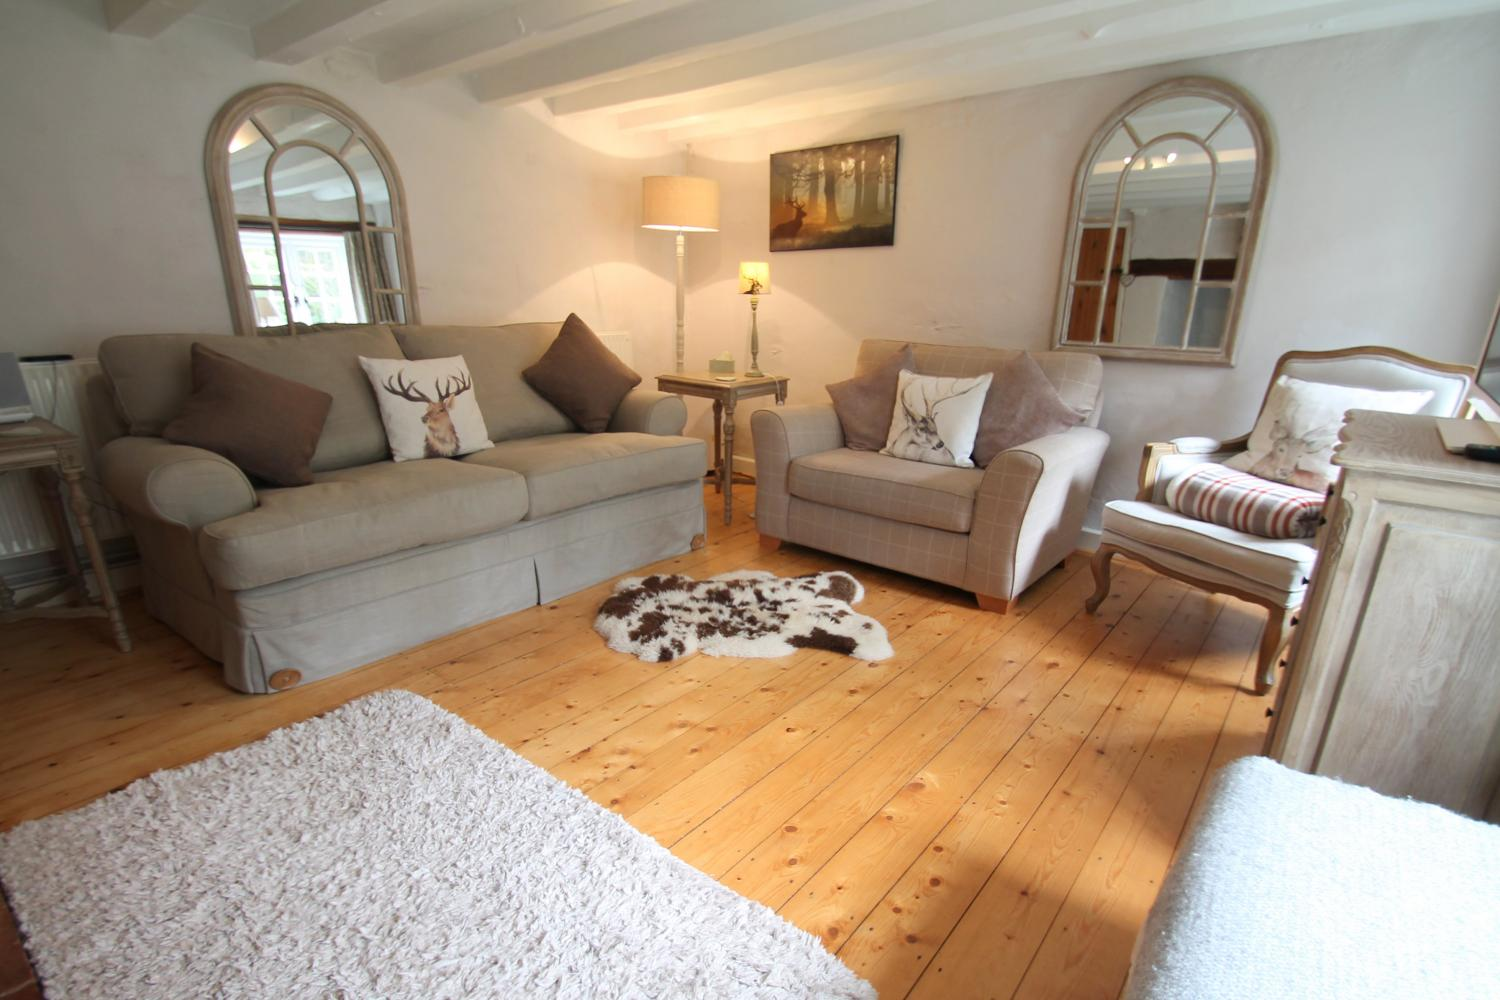 Comfortable seating in the cosy sitting room